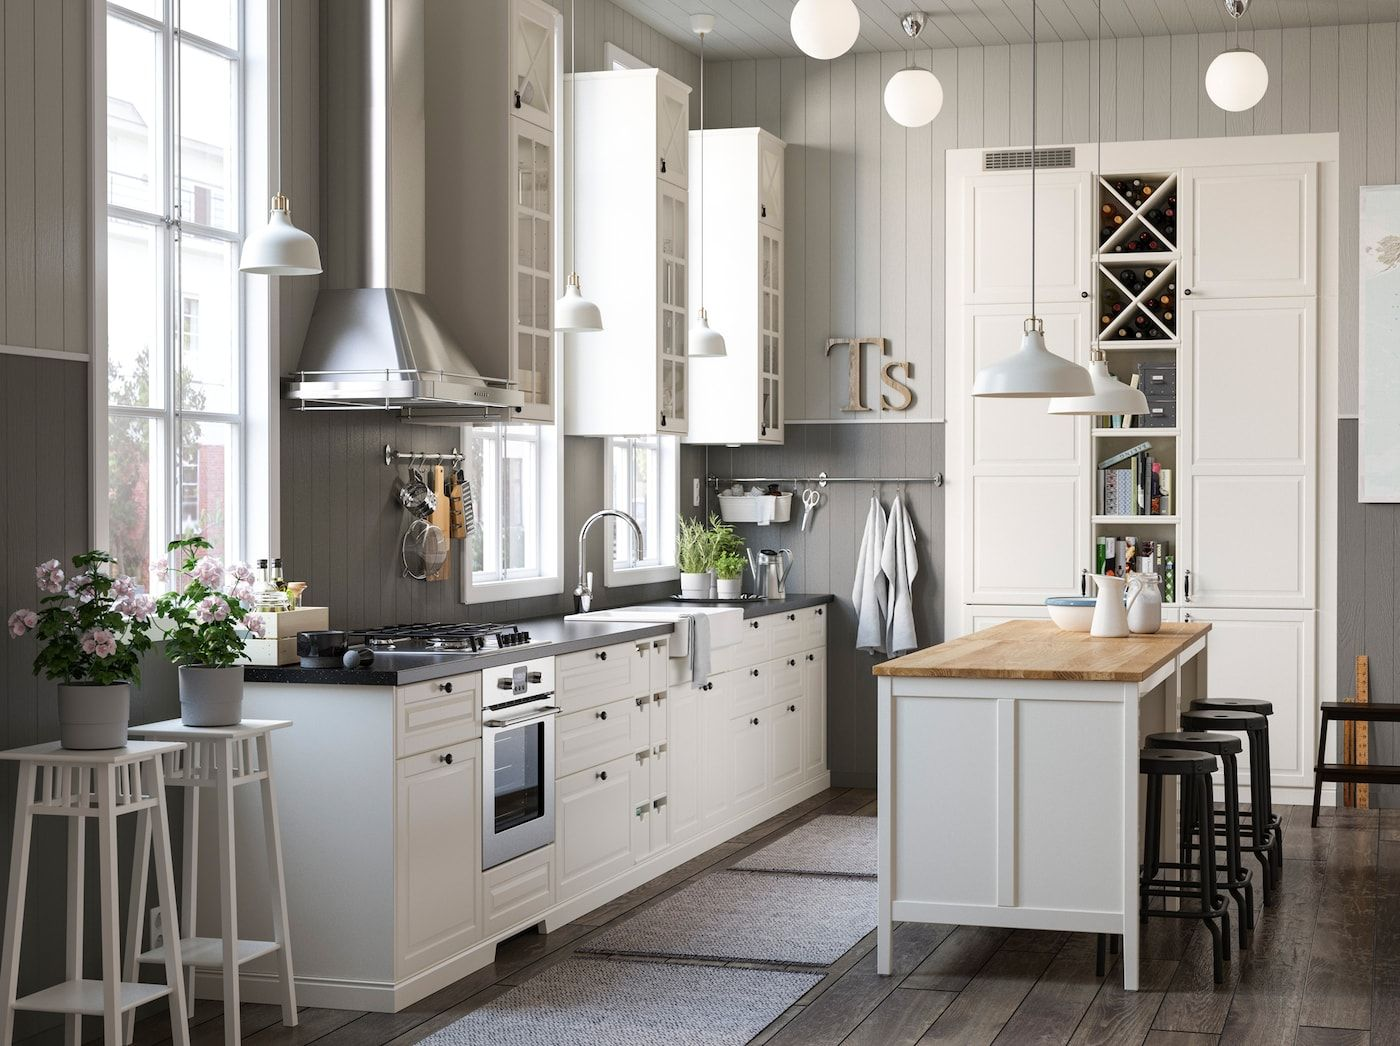 Cuisine Champetre En Ville Countryside Kitchen Ikea Kitchen Inspiration Ikea Kitchen Storage